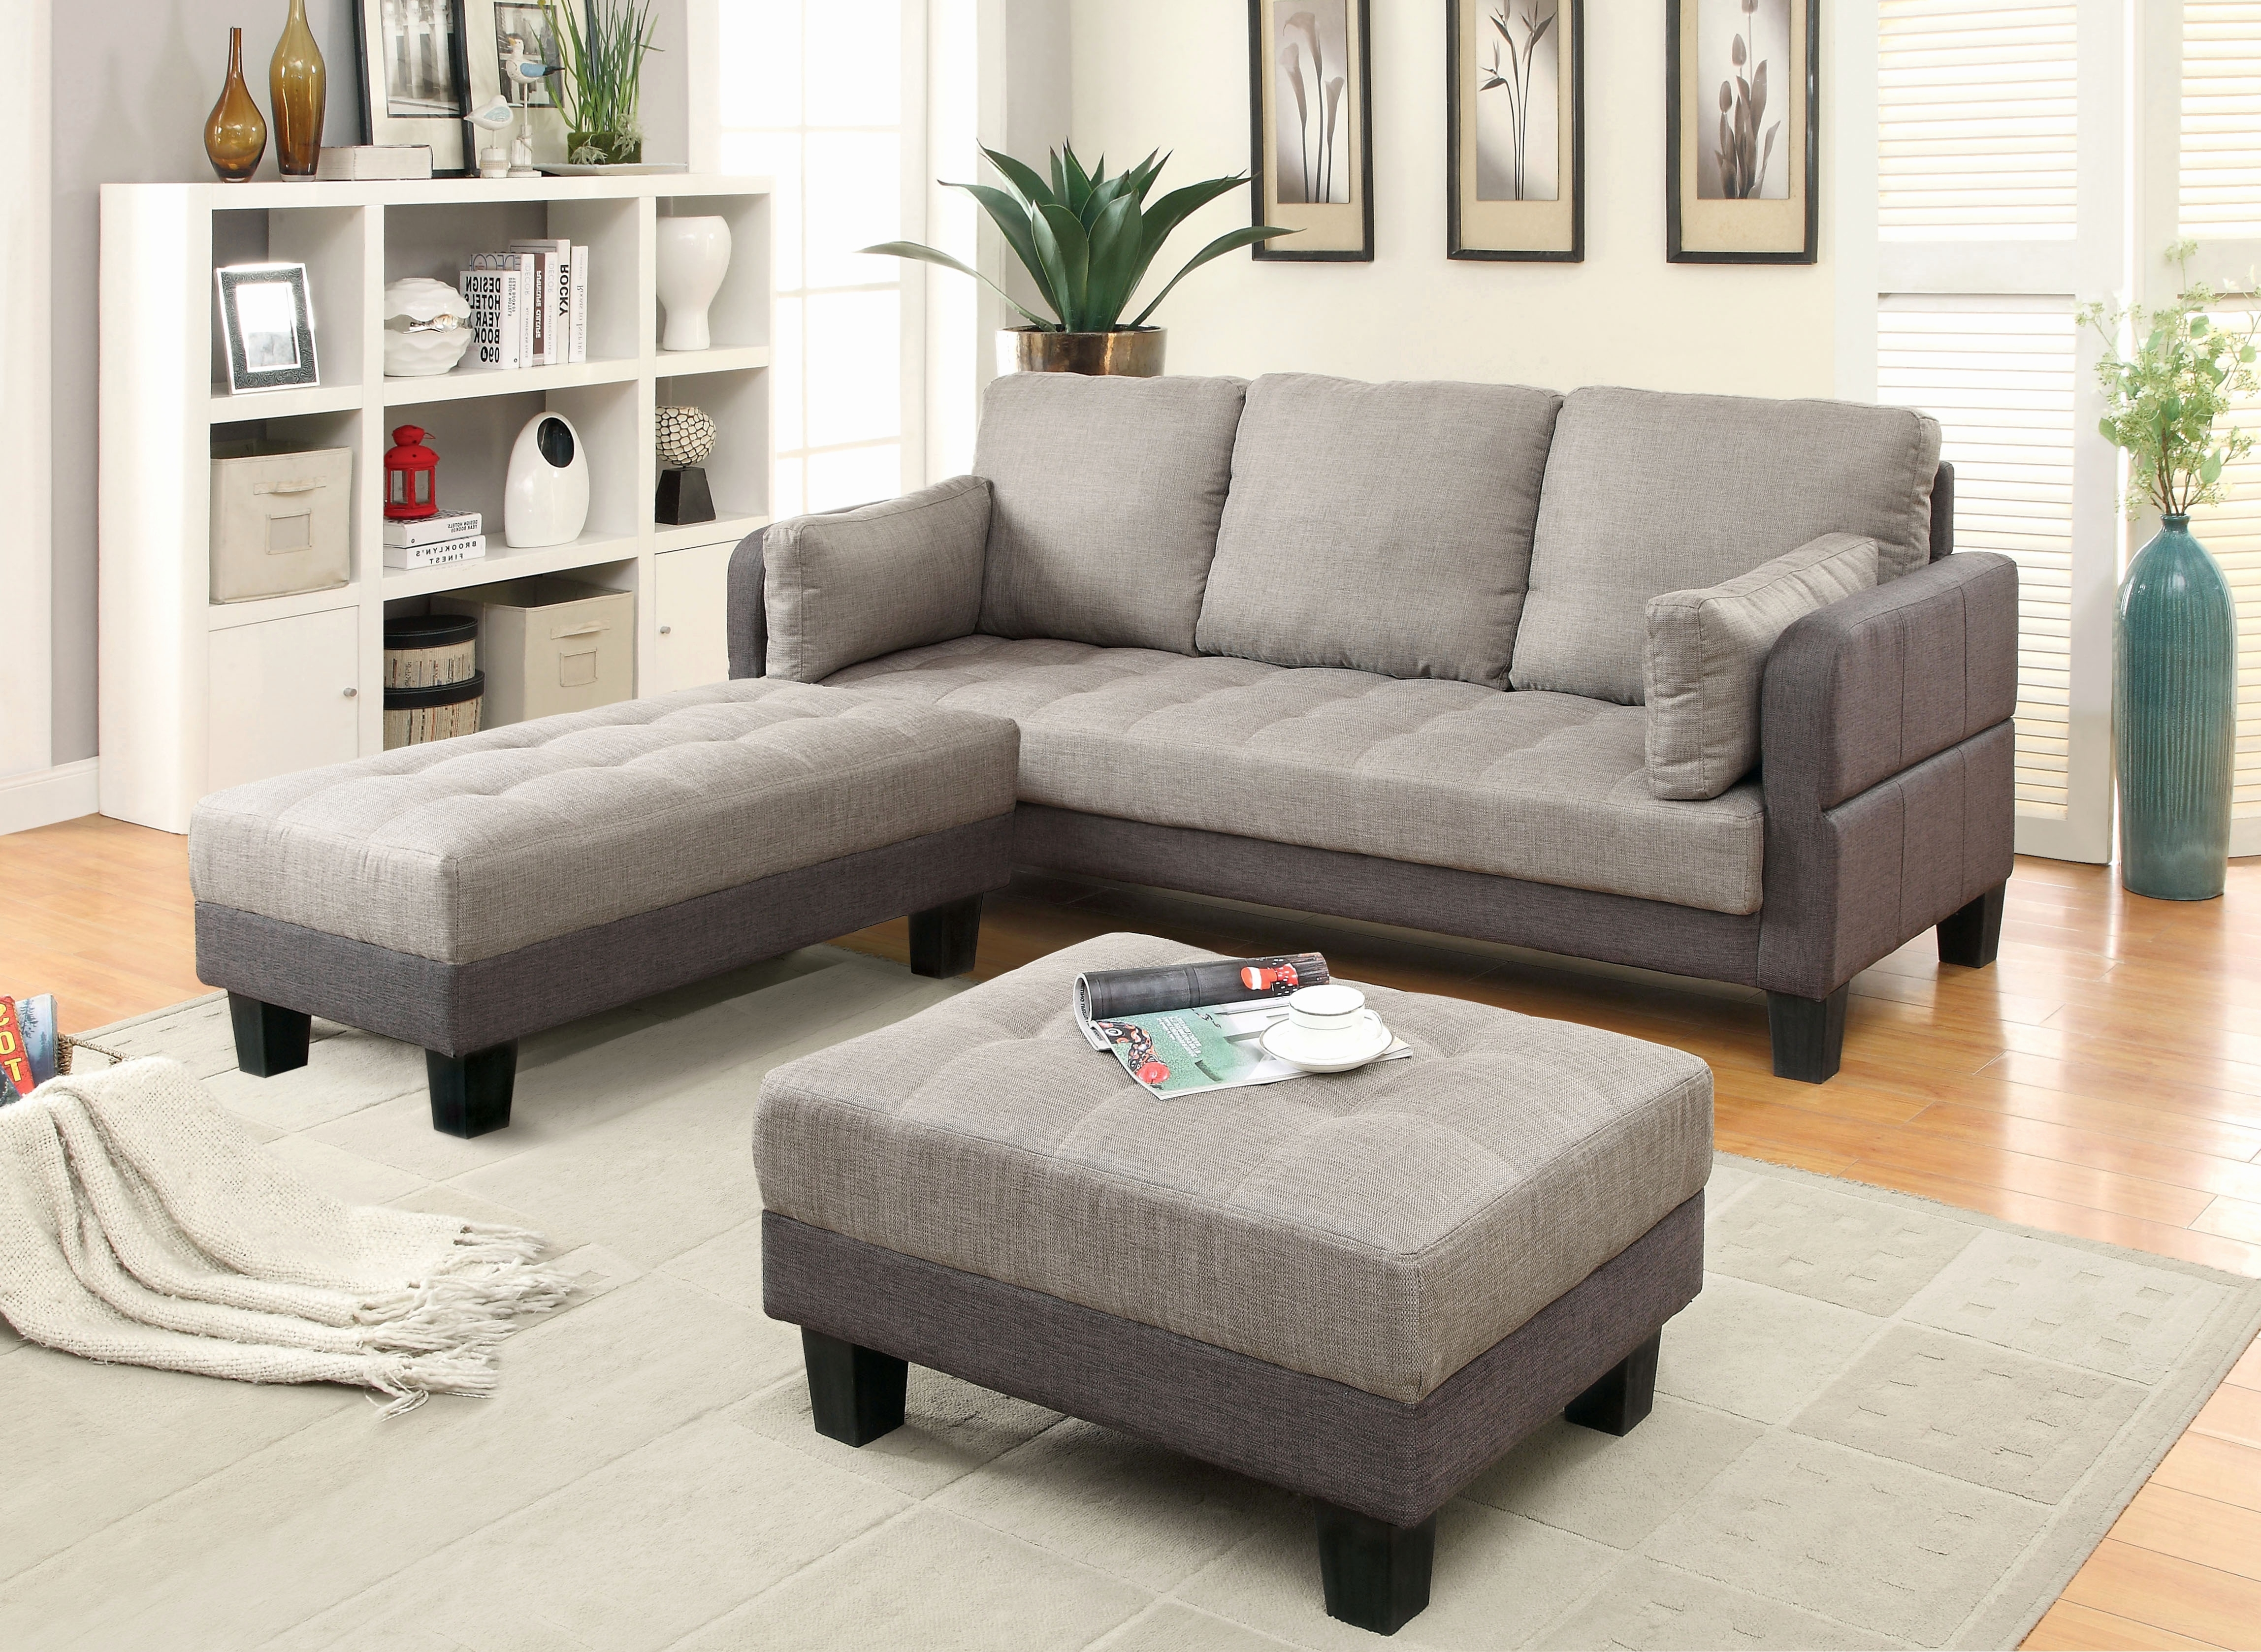 Well Liked Two Tone Sofas With Regard To Luxury Two Tone Sofa 2018 – Couches And Sofas Ideas (View 14 of 15)